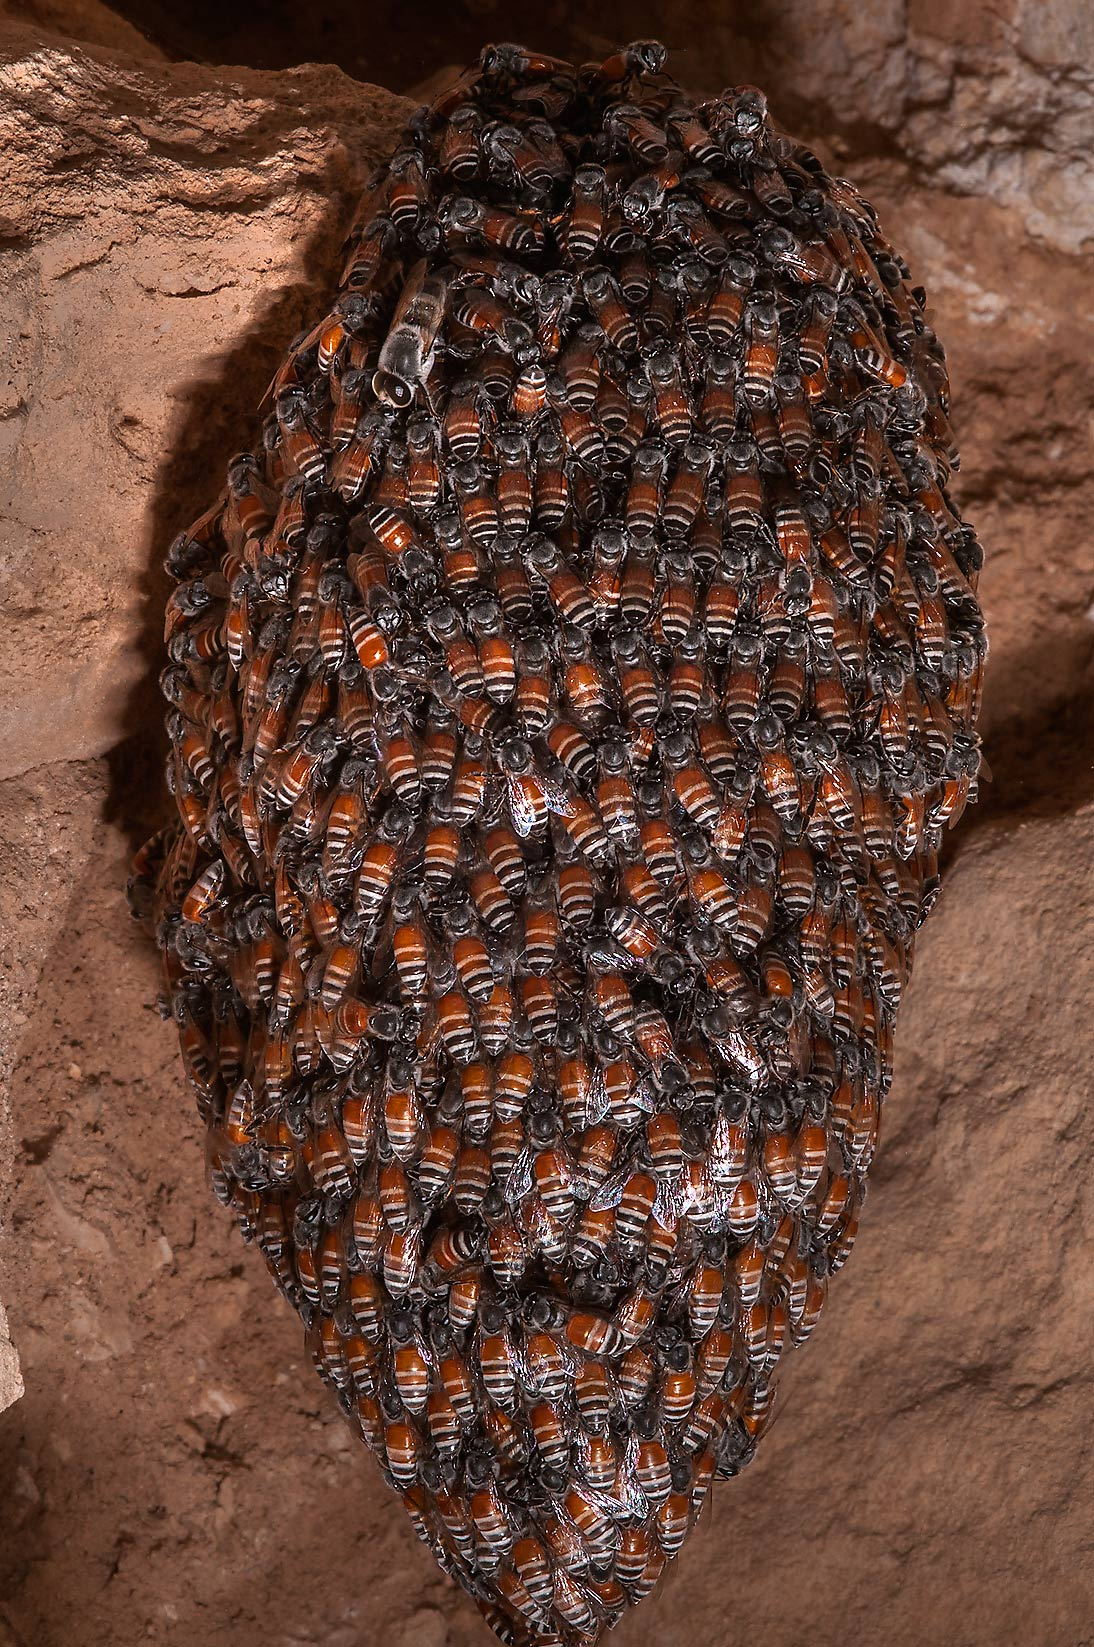 Nest of swarming honey bees at excavations at al-Ruwaydah near Ruwais in northern Qatar